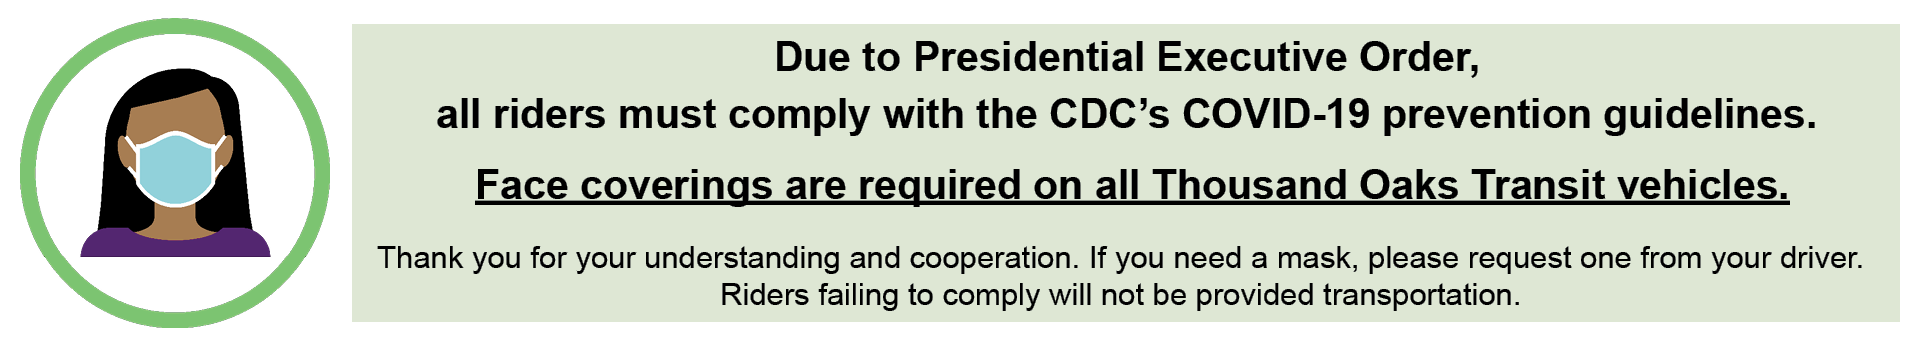 Due to Presidential Executive order, all riders must comply with CDC COVID-19 prevention guidelines. Face coverings are required on all TO Transit vehicles. A mask may be requested on board. Riders failing to comply will not be provided transportation.